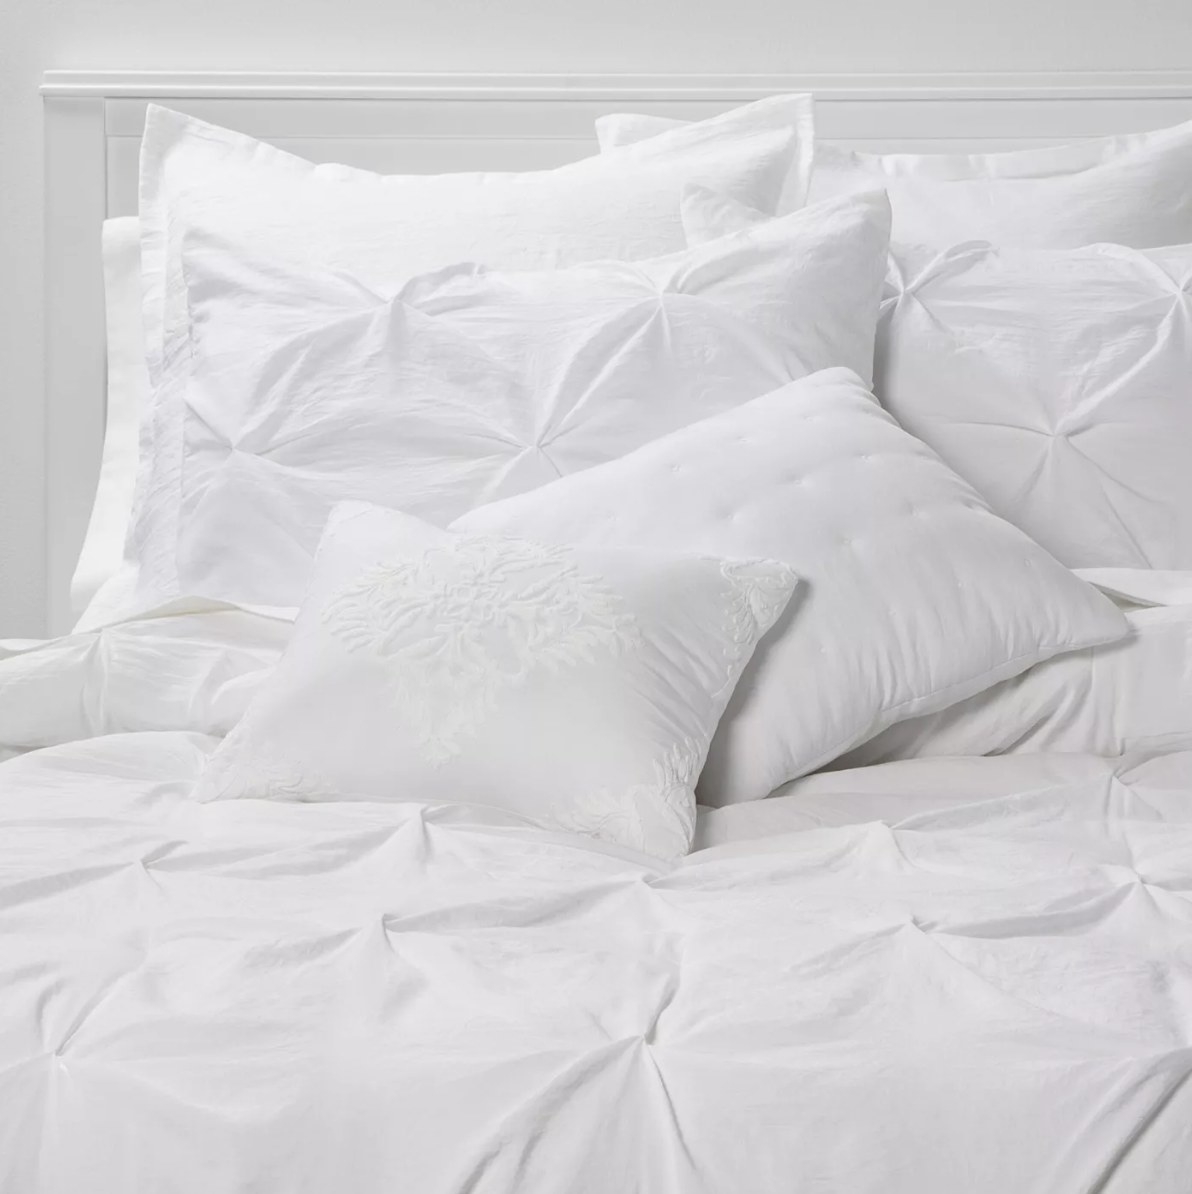 A white pinch pleat comforter with matching pillows